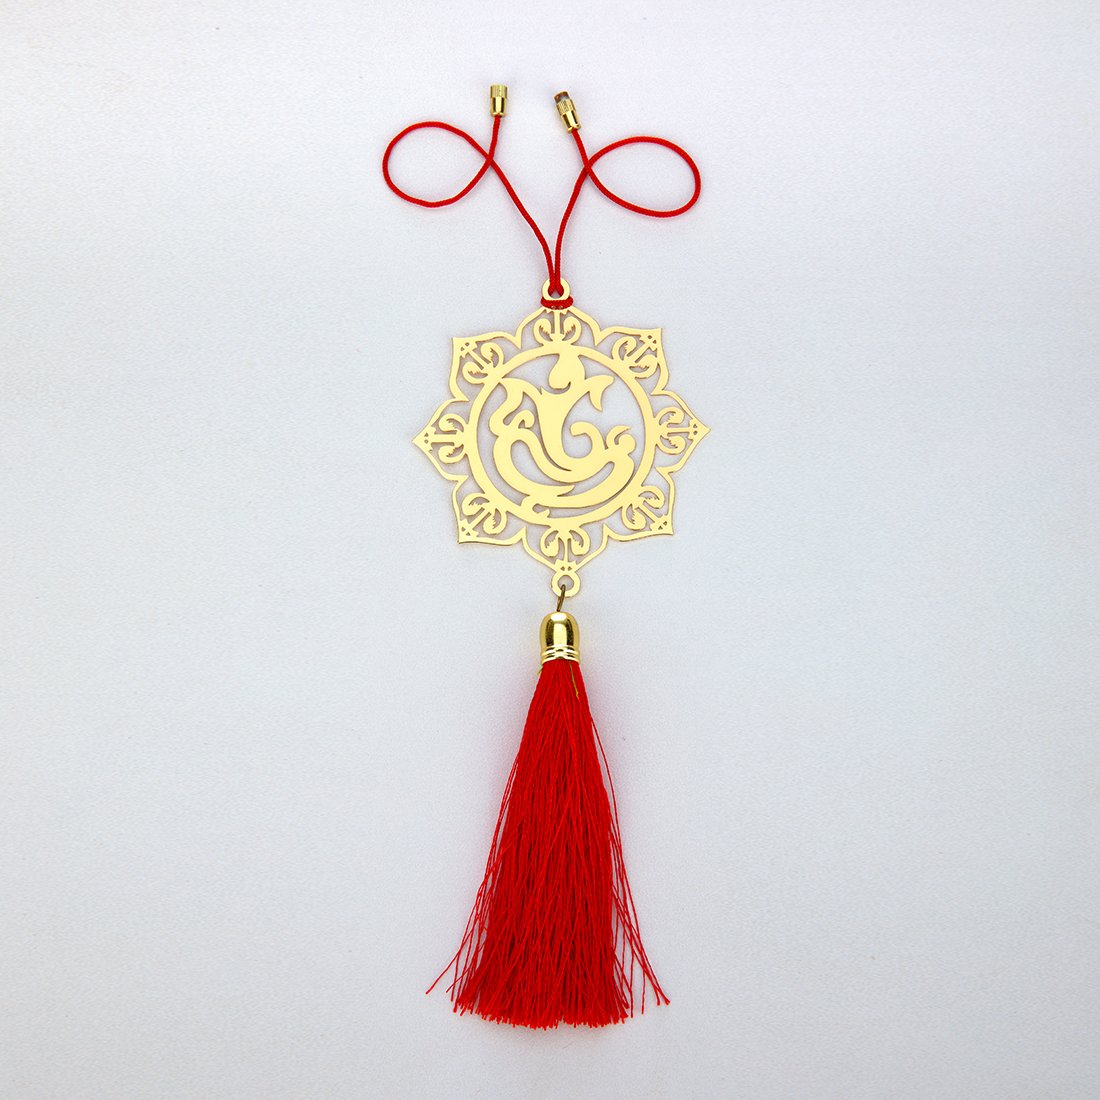 ADORAA's Ganesha Ganpati Rear View Mirror Car Hanging Ornament/ Perfect Car Charm Pendant/Amulet - Accessories for Car Dé cor in Brass for Divine Blessings & Safety/Protection Transcending Horizons Pvt Ltd THCH27000001